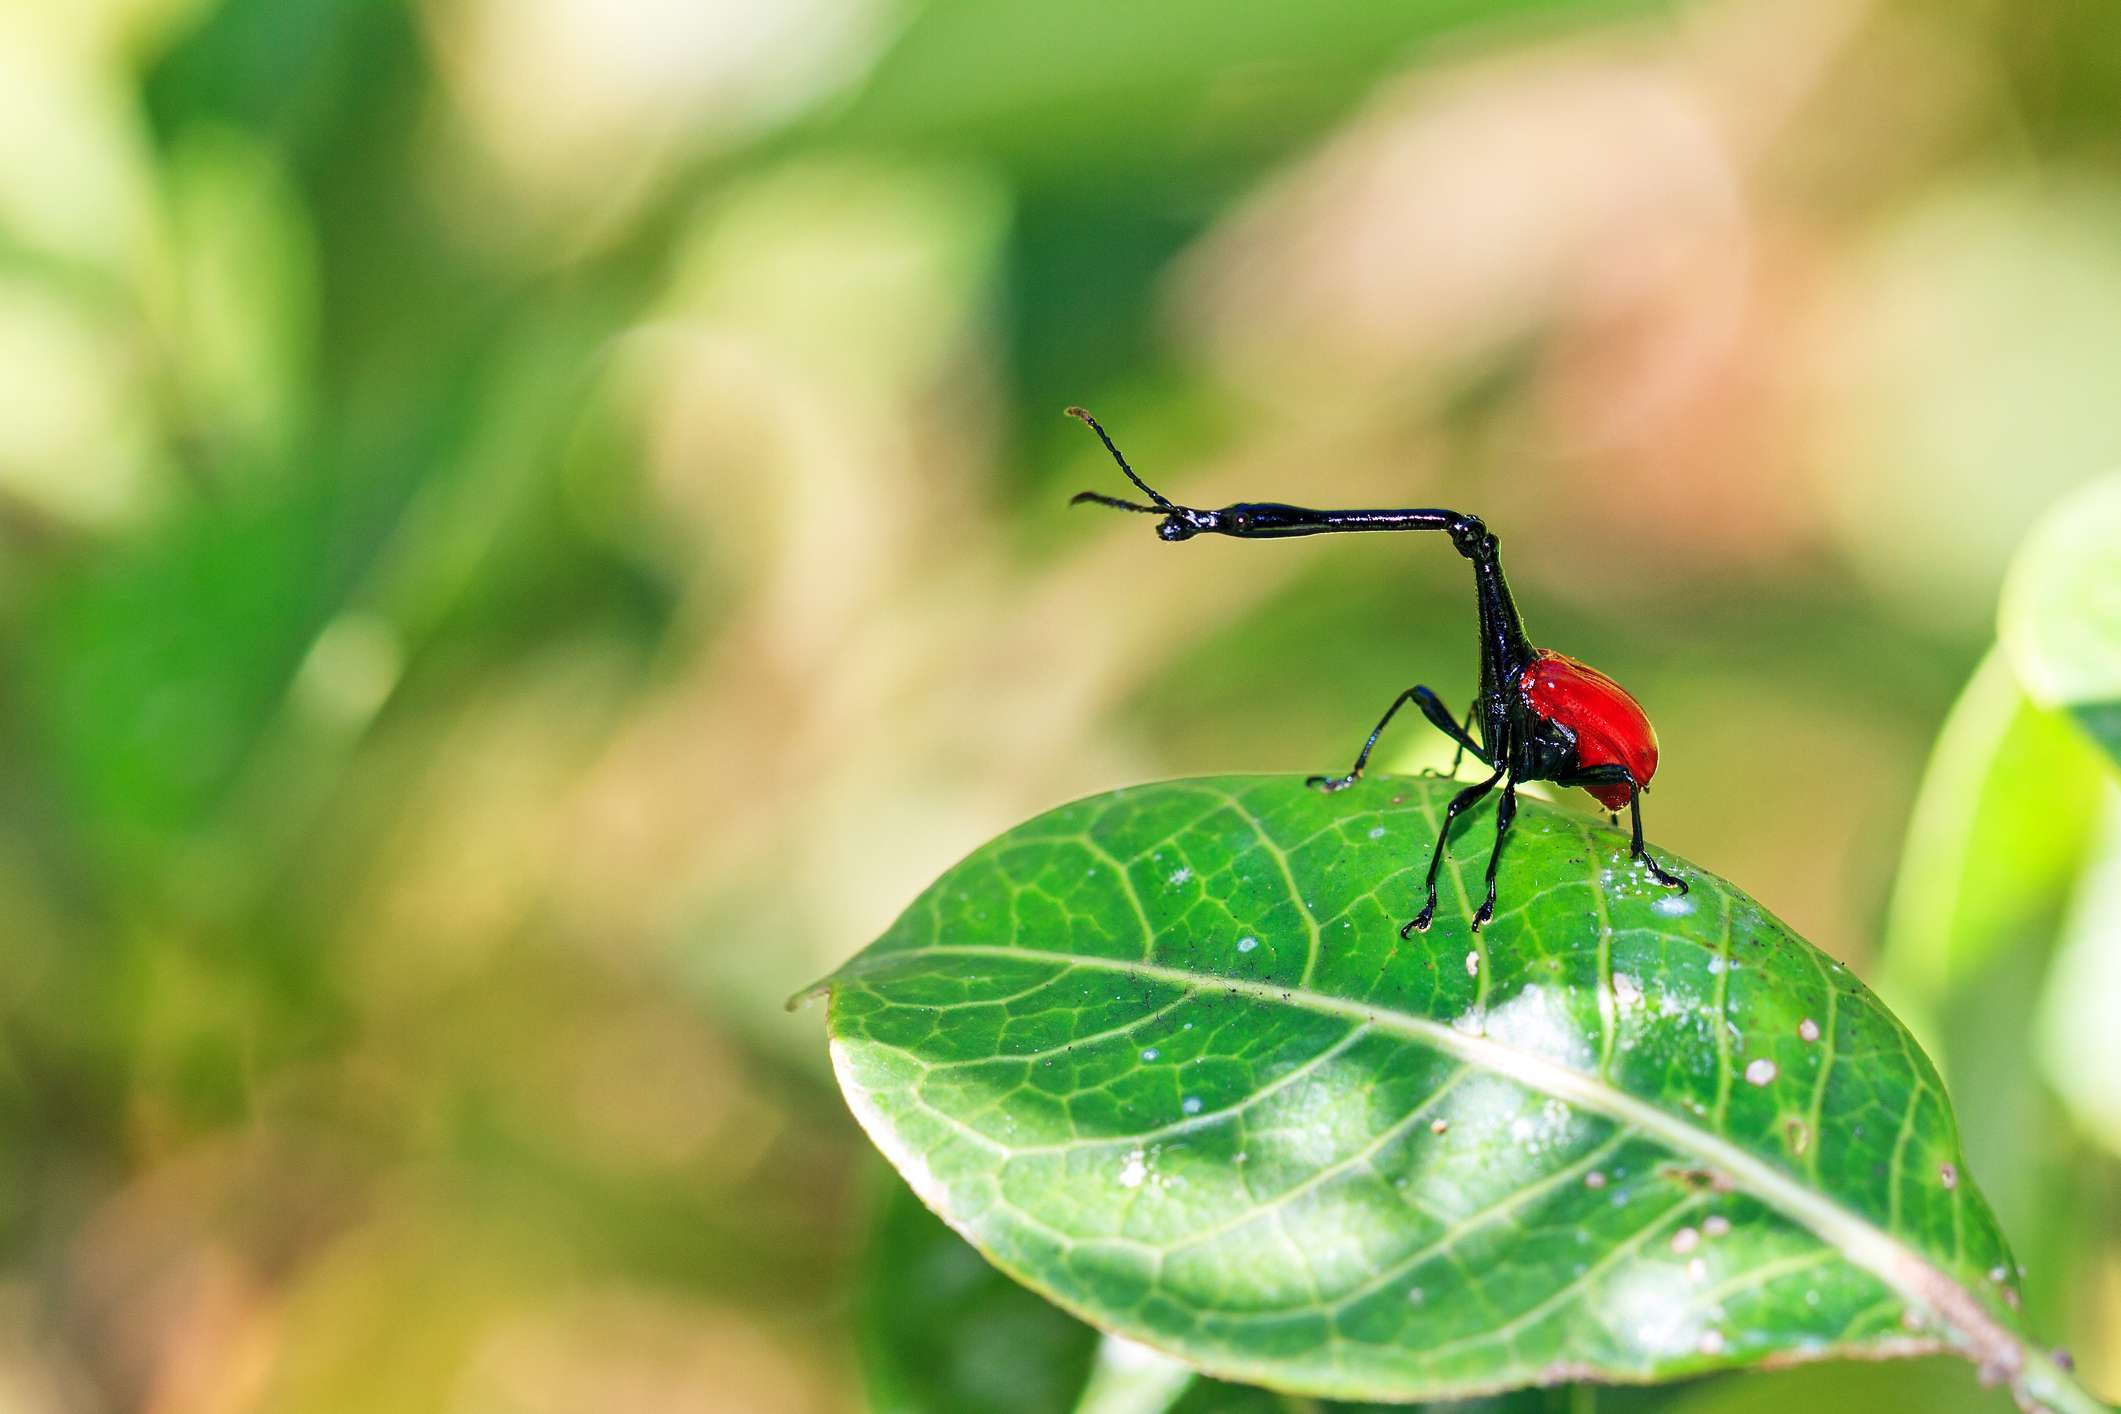 giraffe weevil with red body and black long neck on leaf